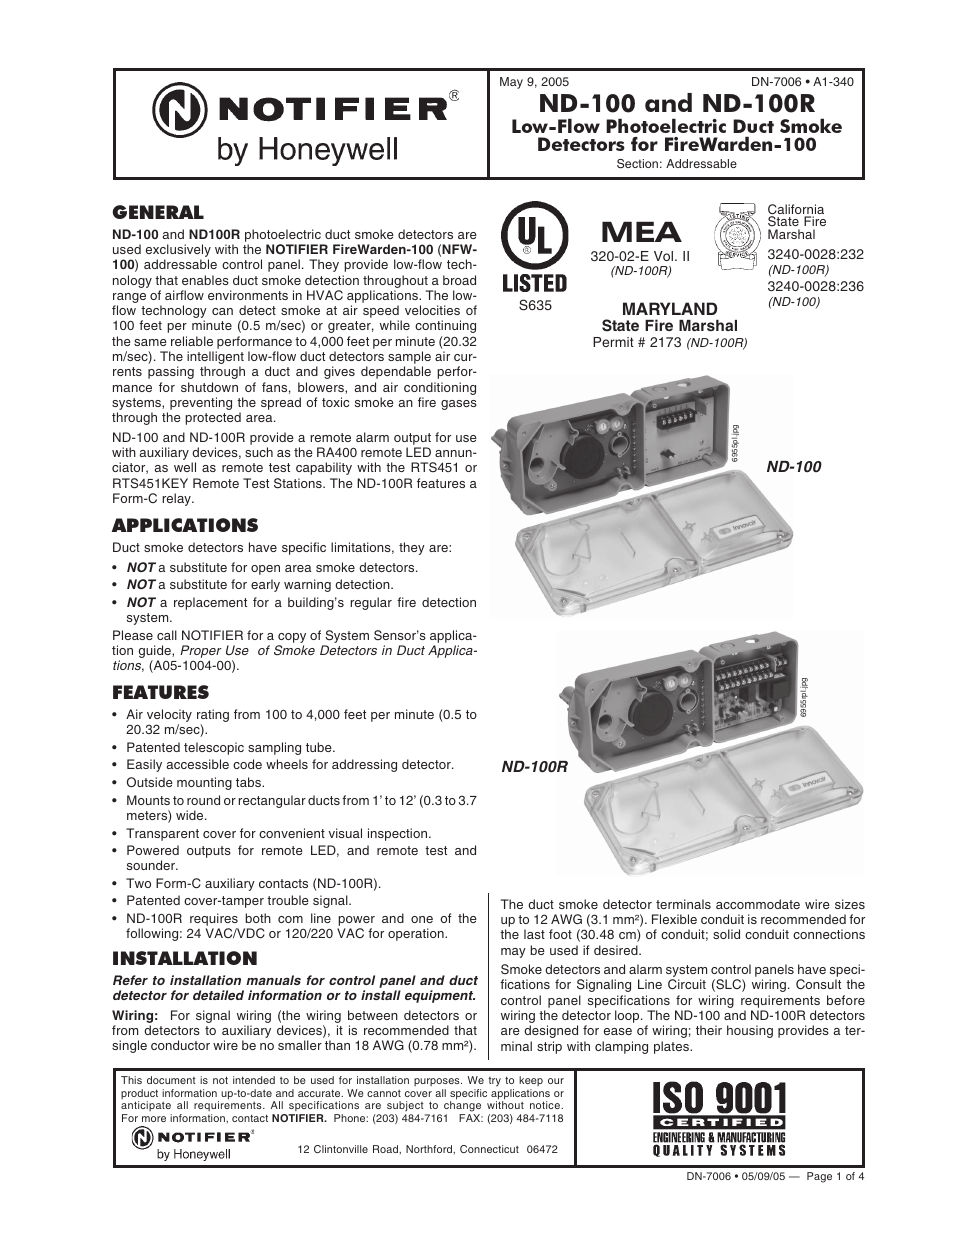 Notifier ND-100R User Manual | 4 pages